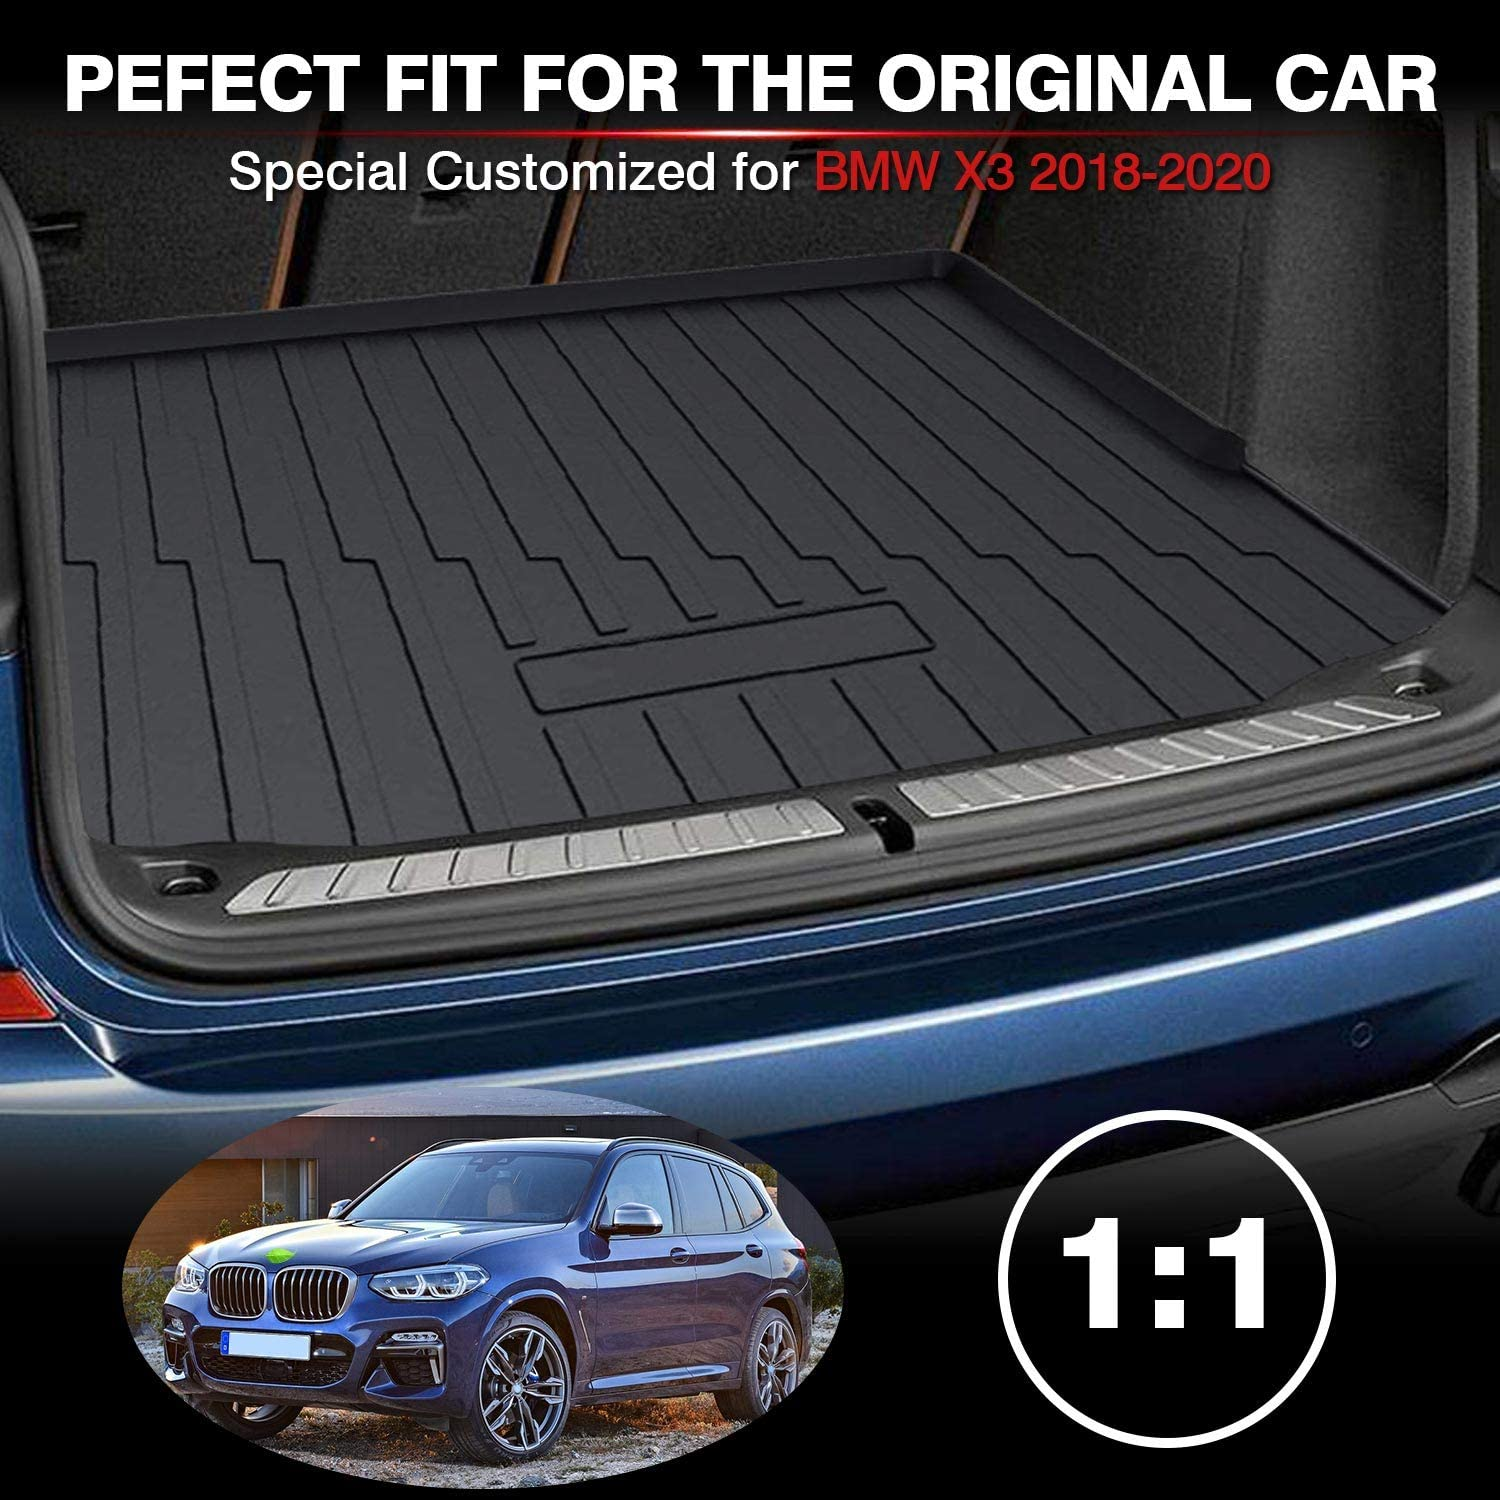 Powerty Trunk Mat All Weather TPO Rear Cargo Liner for BMW G01 X3 2018 2019 2020